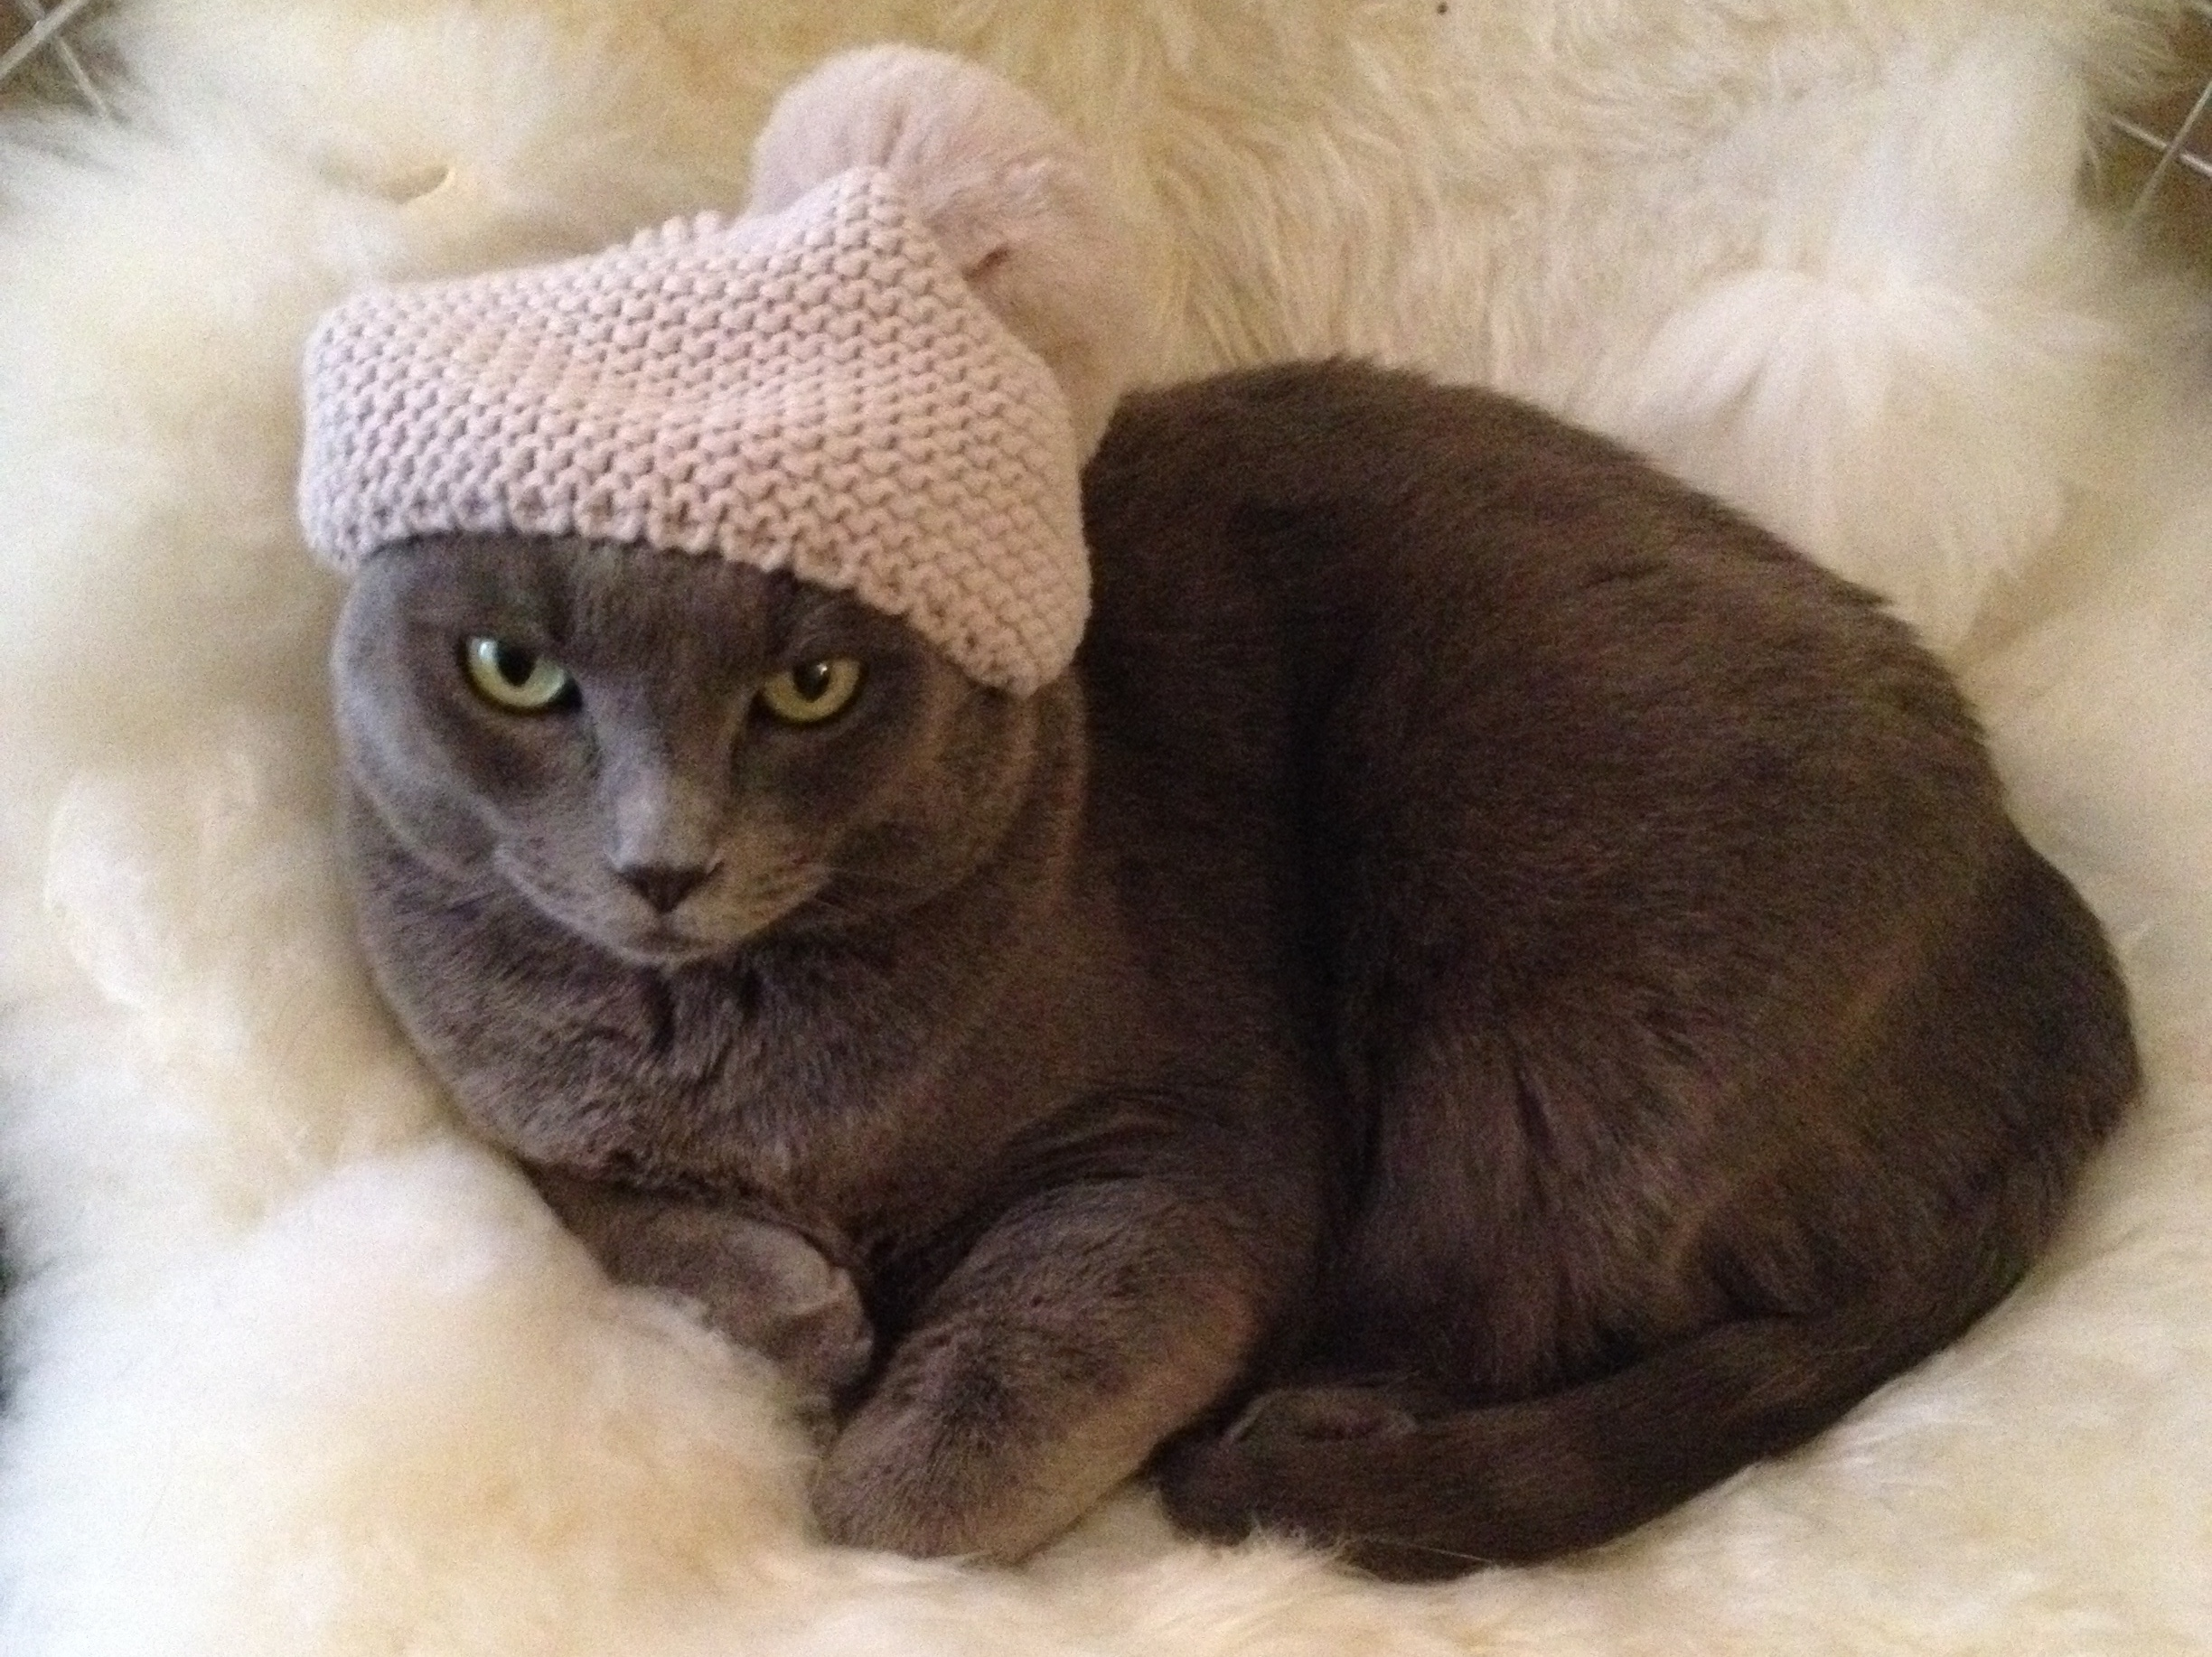 Bruiser's hat-wearing skills aren't in doubt -- but does he have what it takes to be a true Internet celebrity?